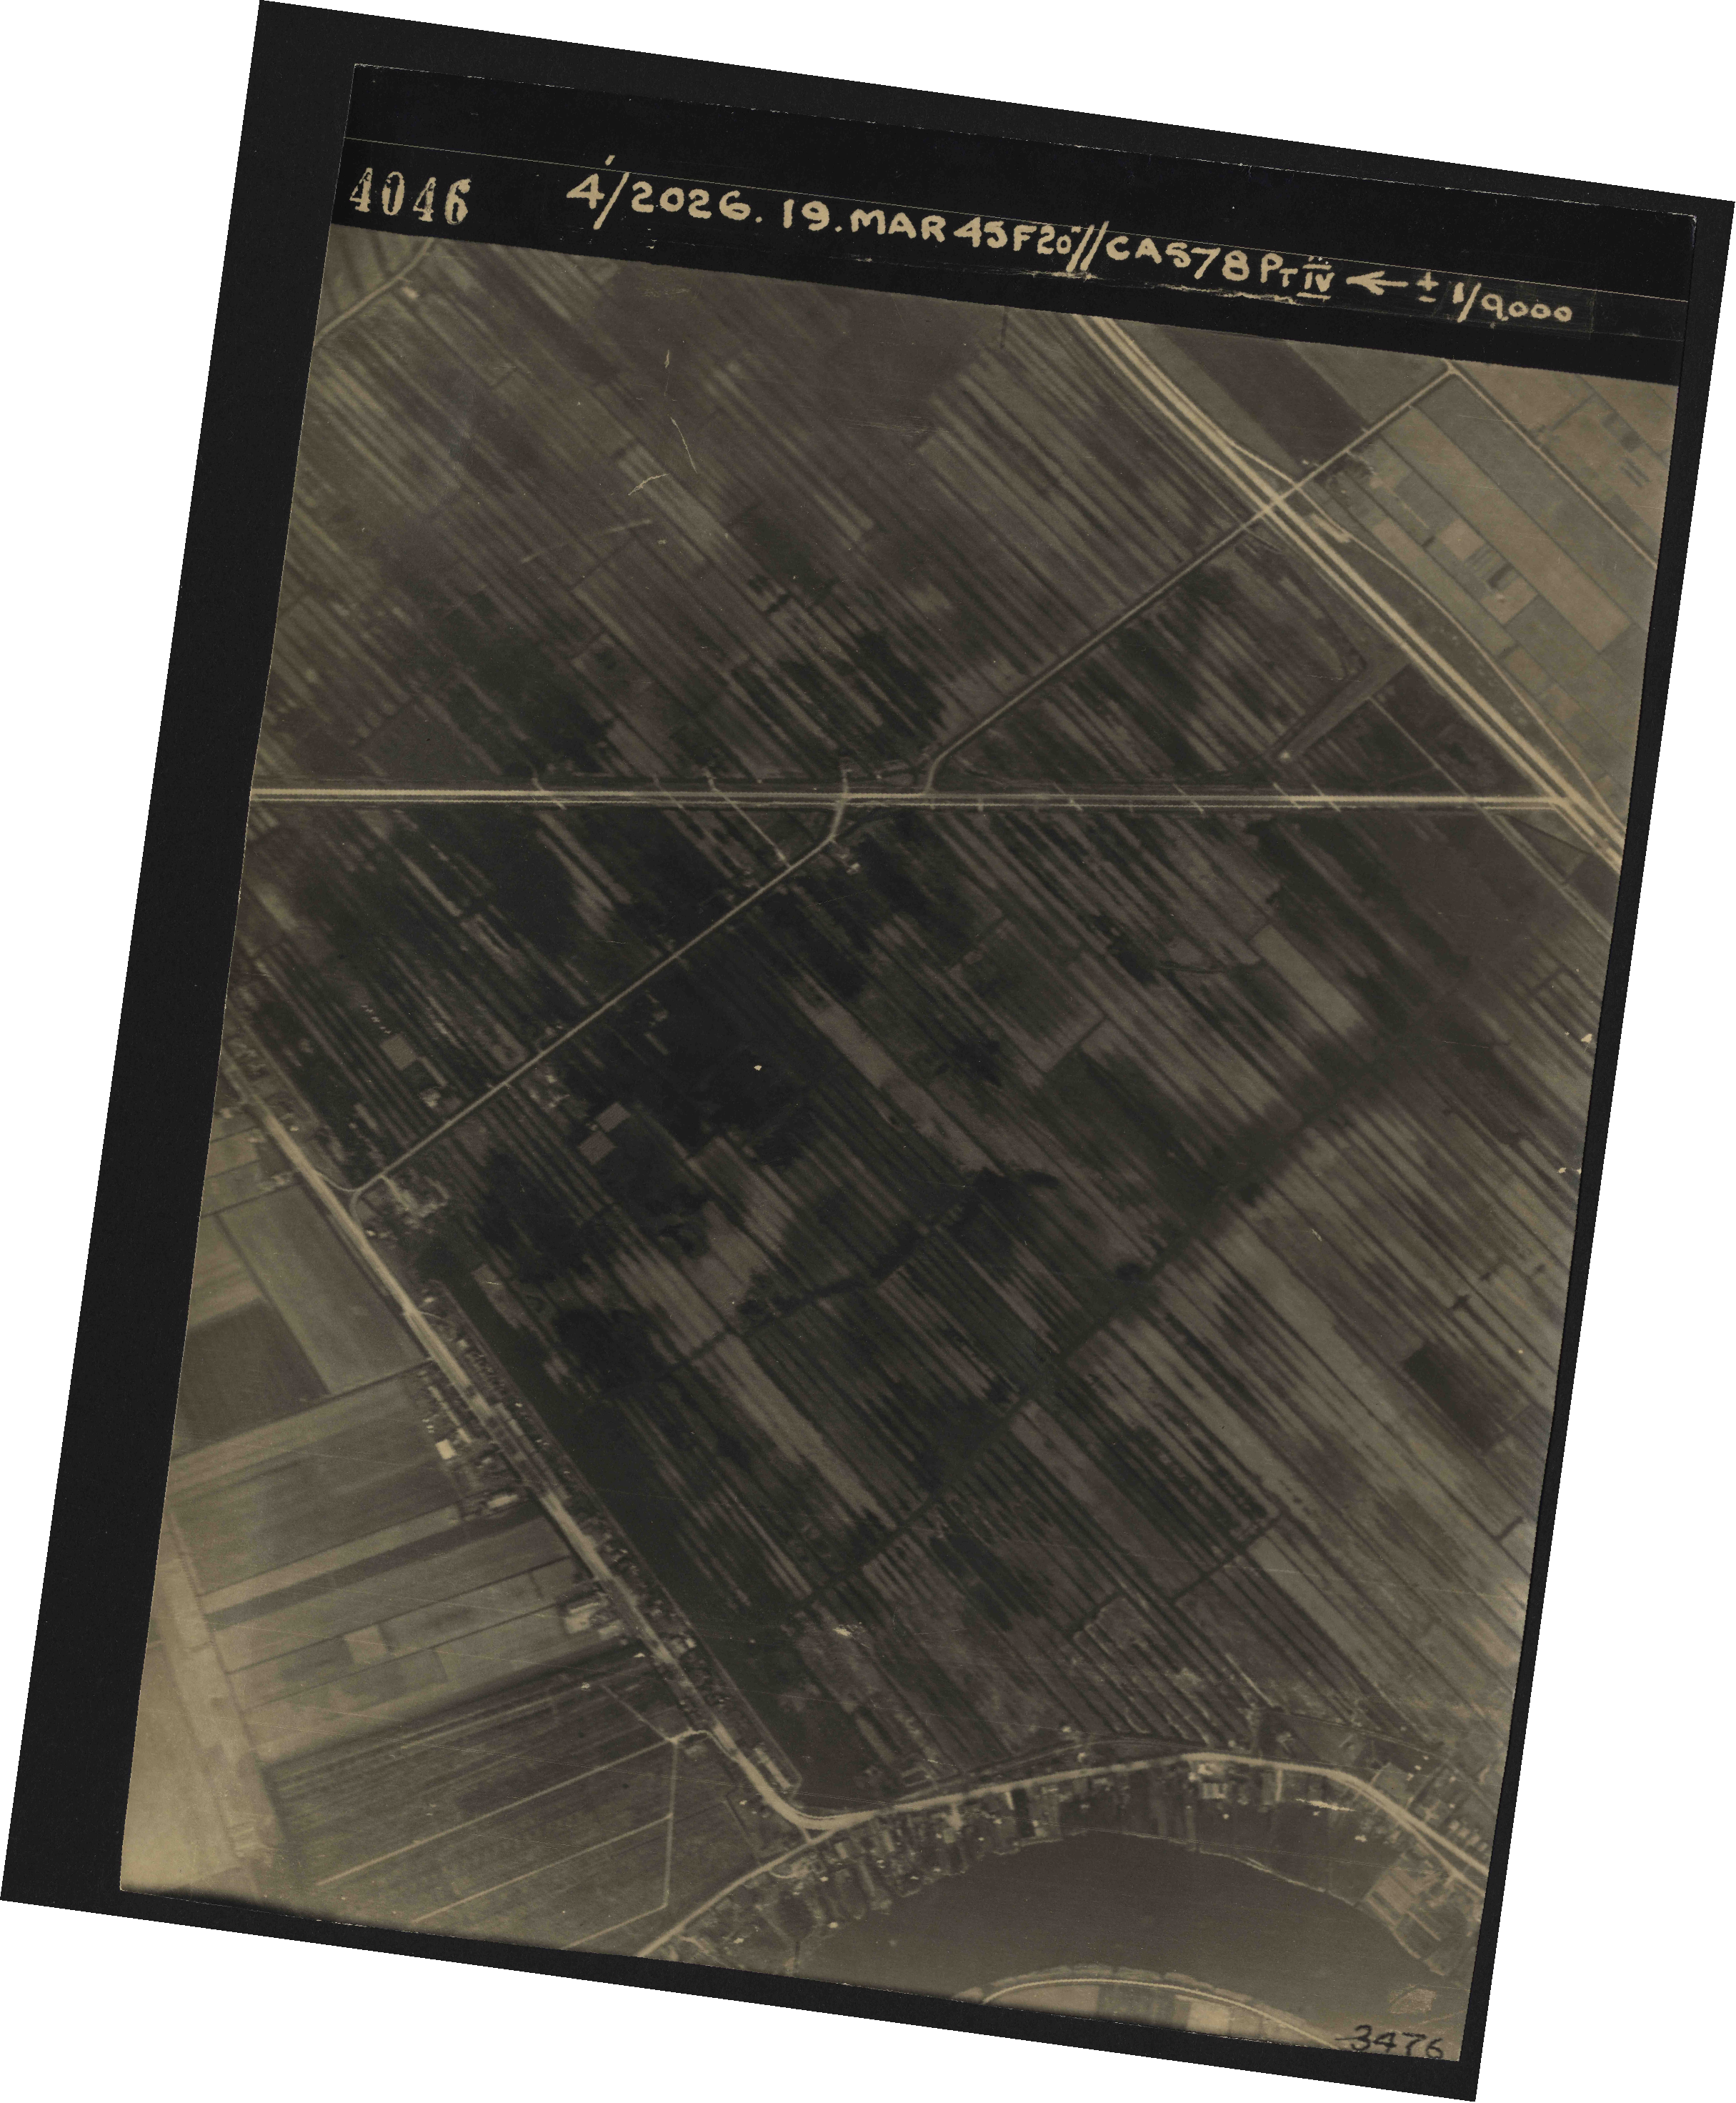 Collection RAF aerial photos 1940-1945 - flight 012, run 02, photo 4046